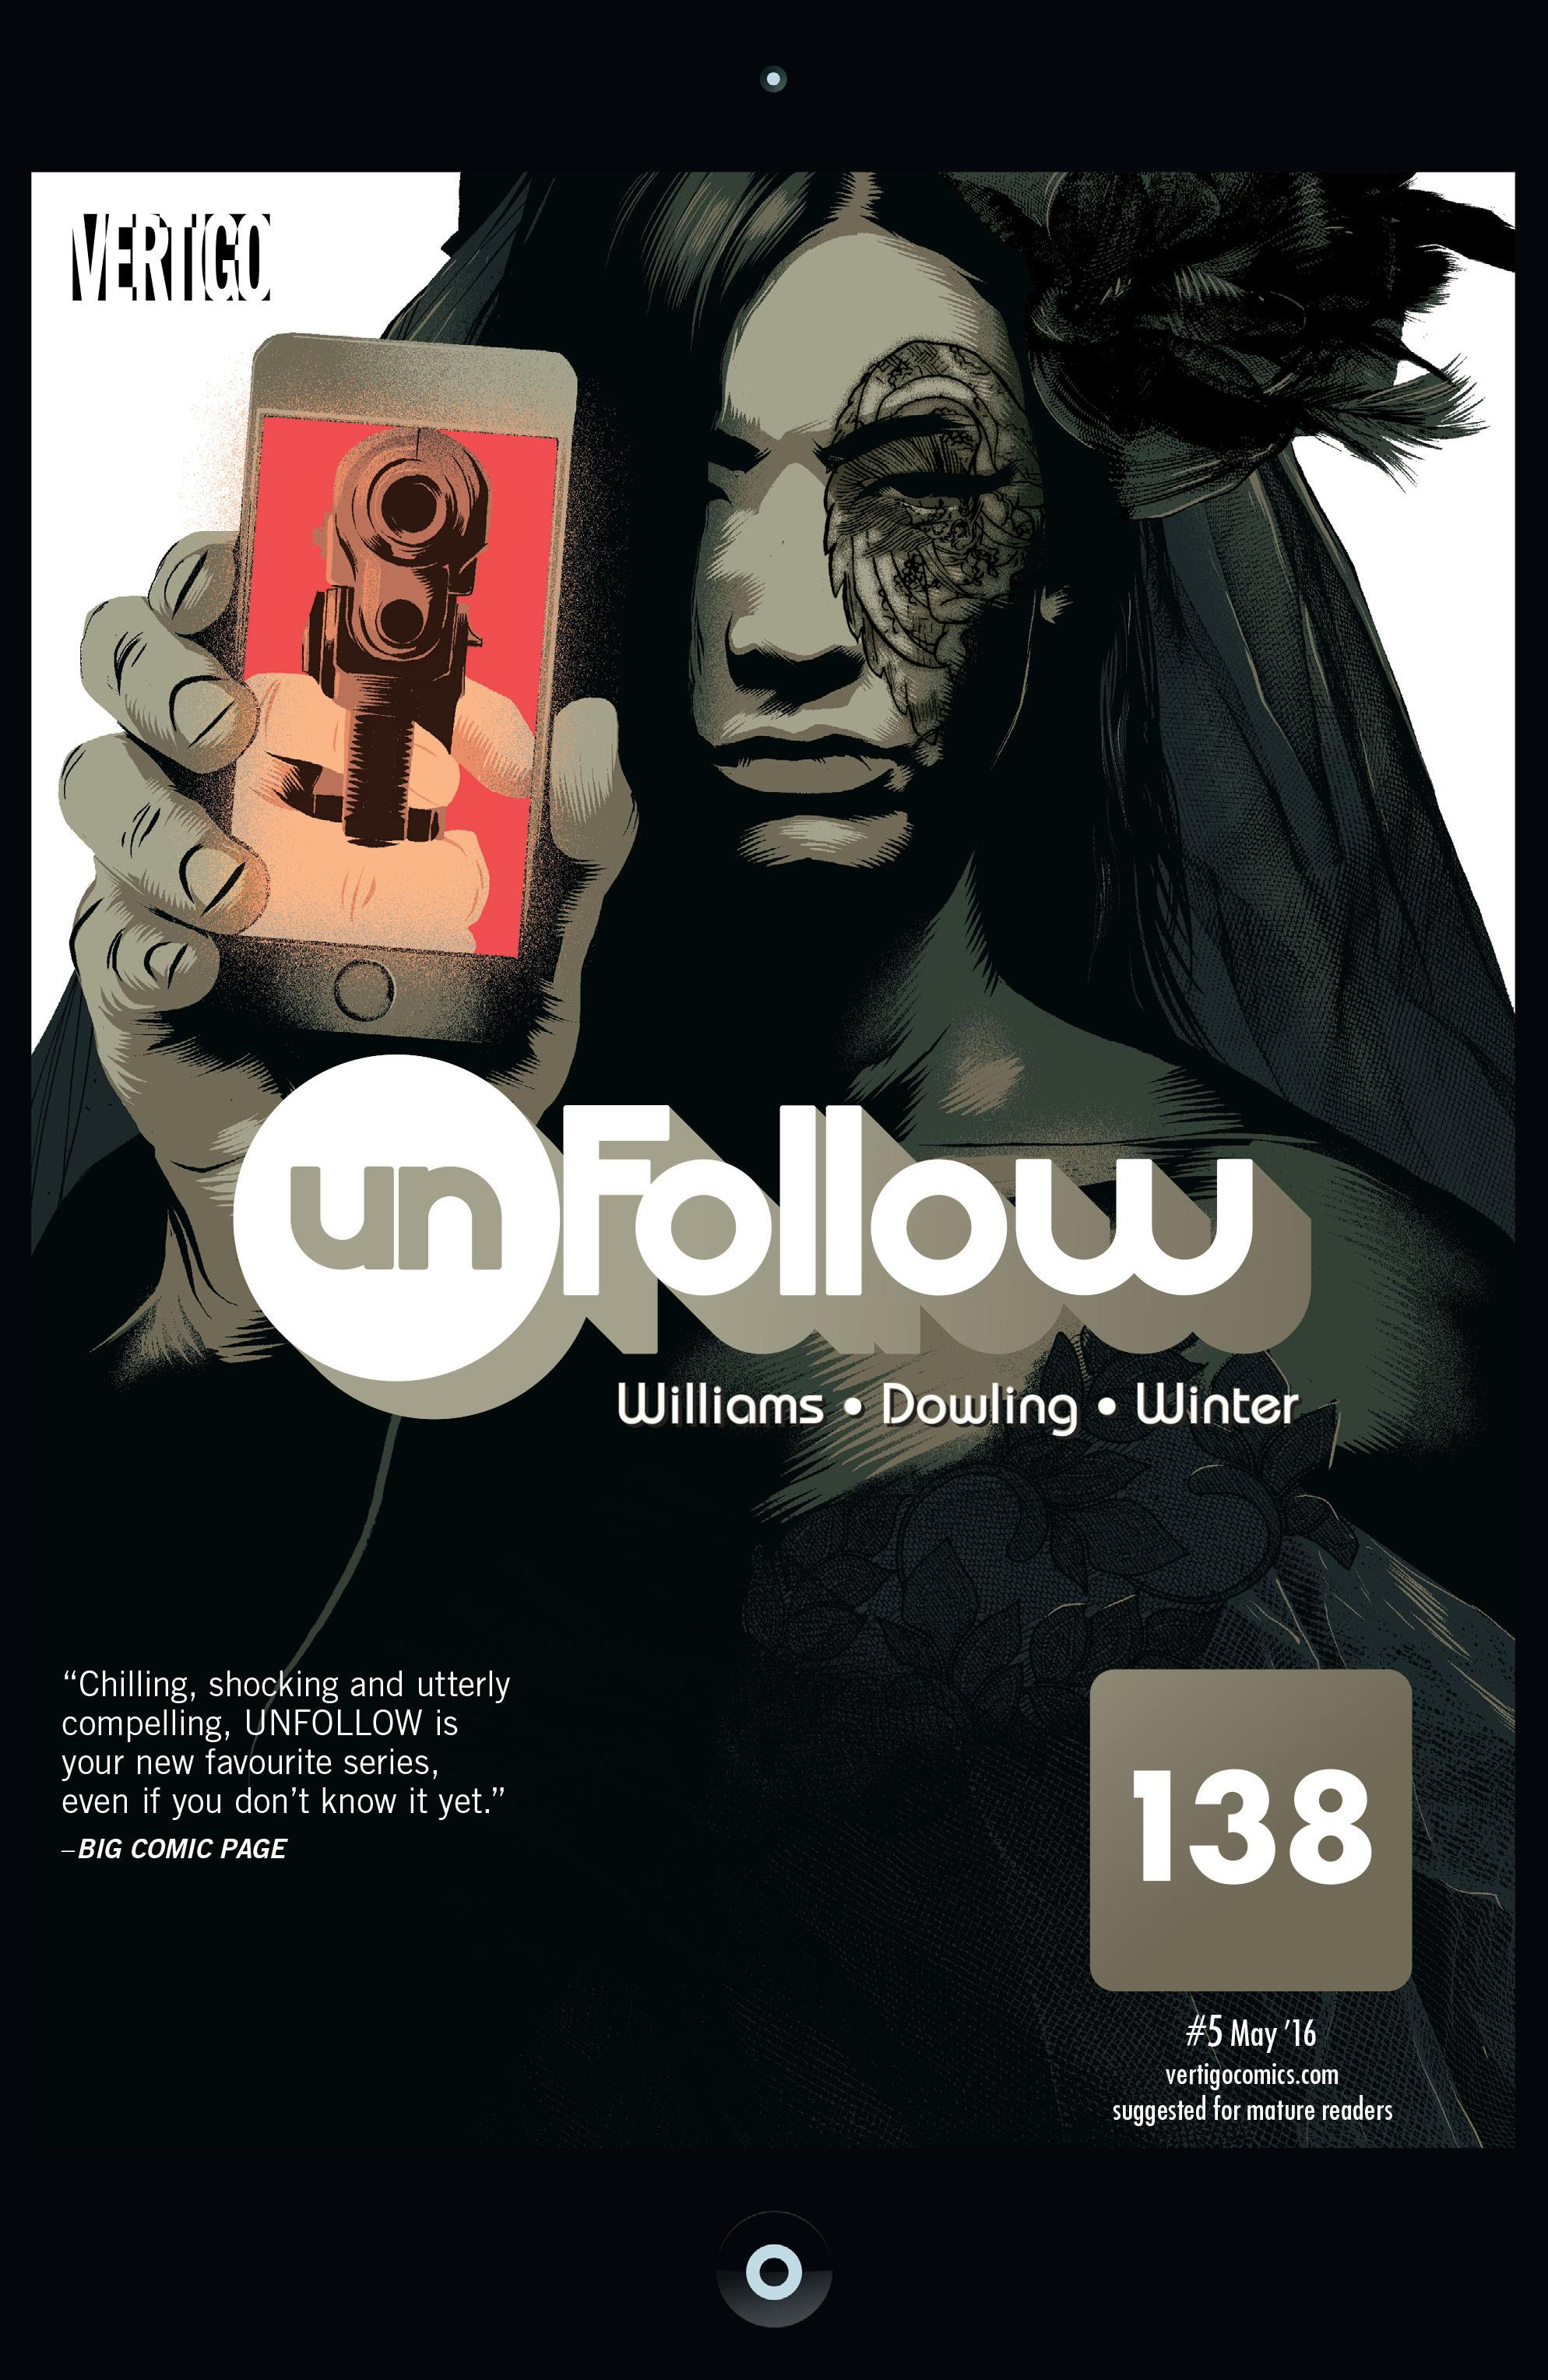 COMIC REVIEW: Unfollow #5 - We Are 138